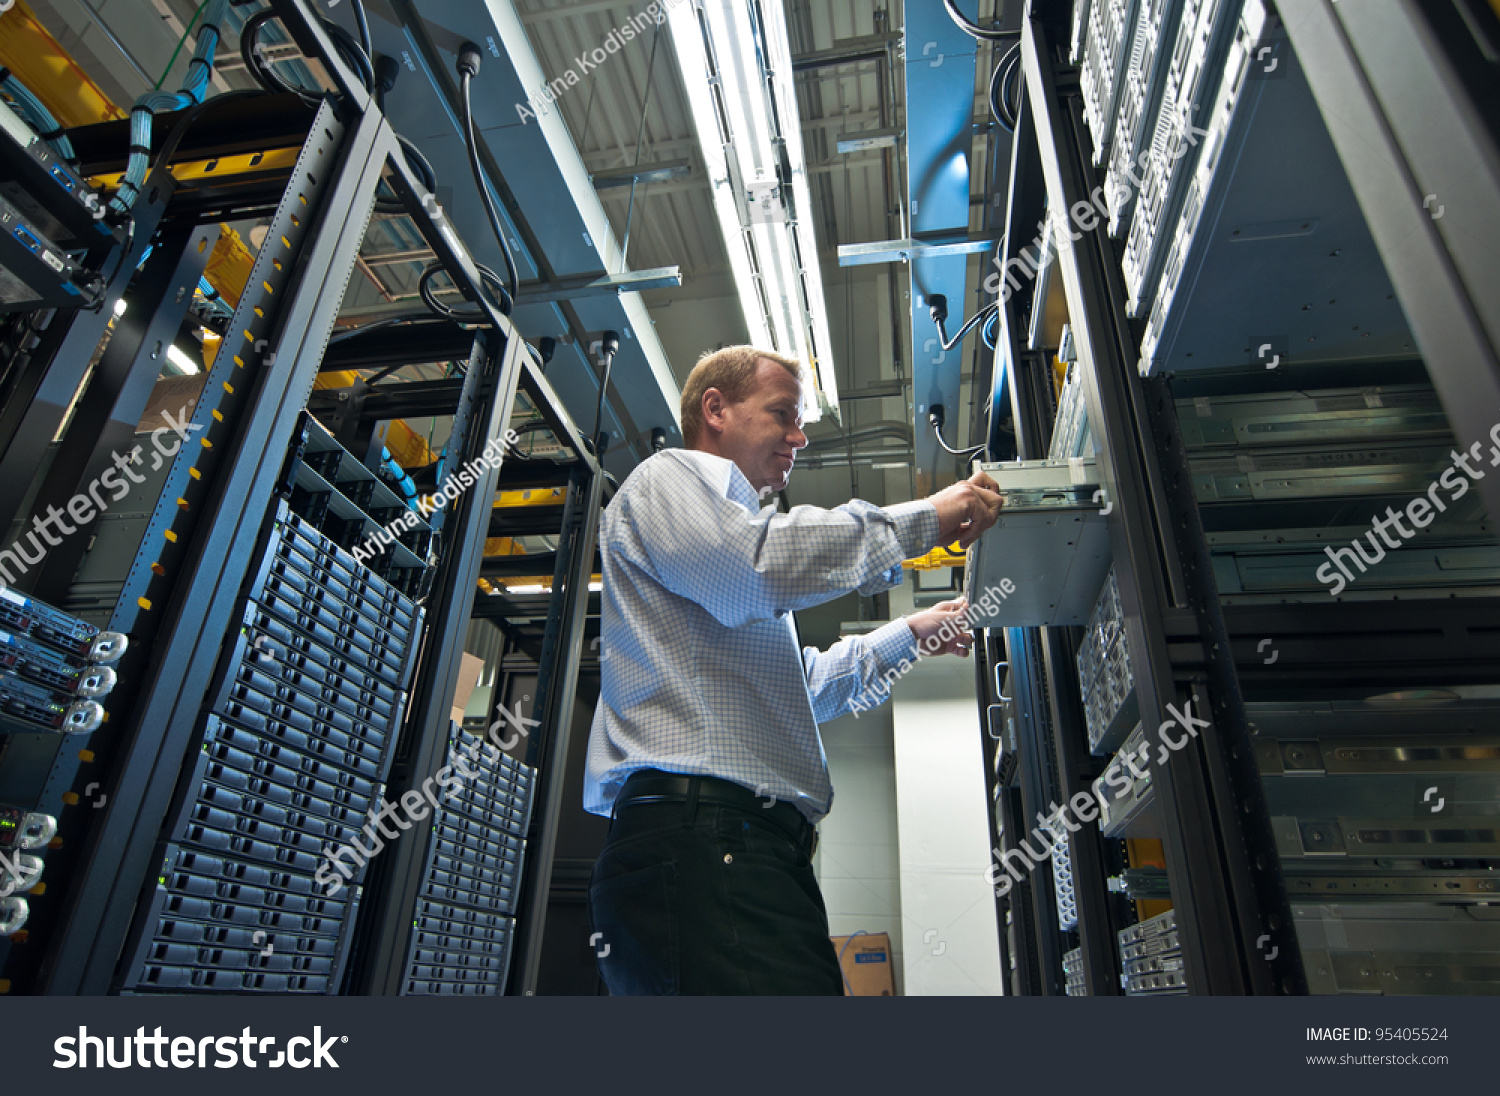 Administrator - It administrator installing a new rack mount server large scale storage server is also seen